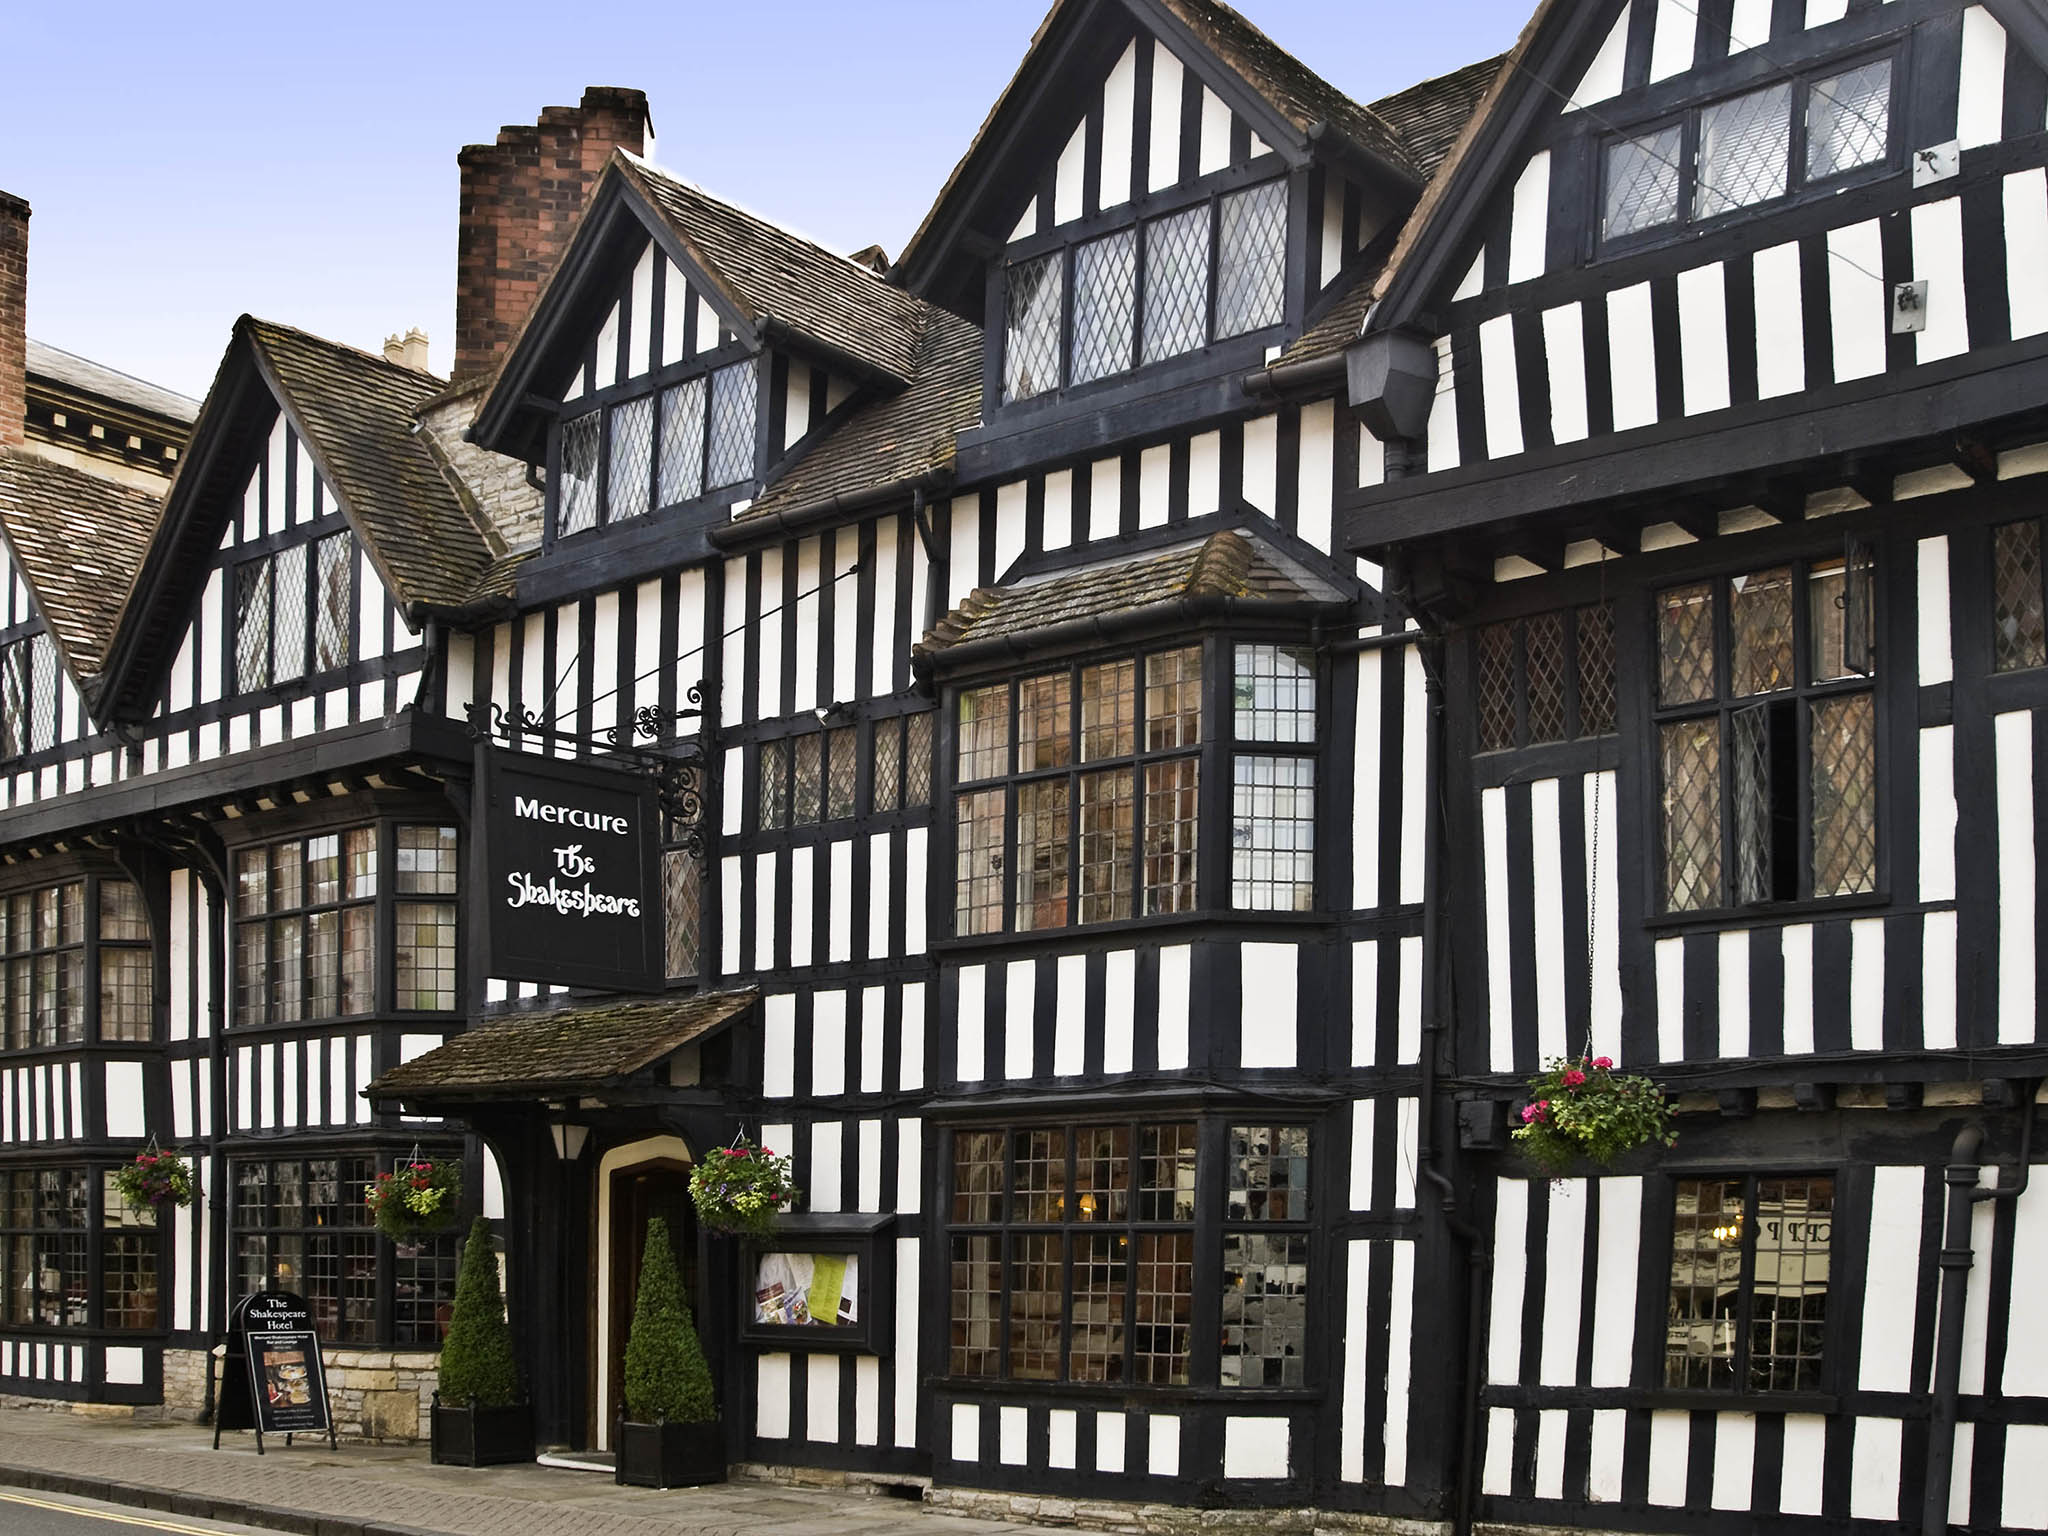 Hotel – Mercure Stratford upon Avon Shakespeare Hotel